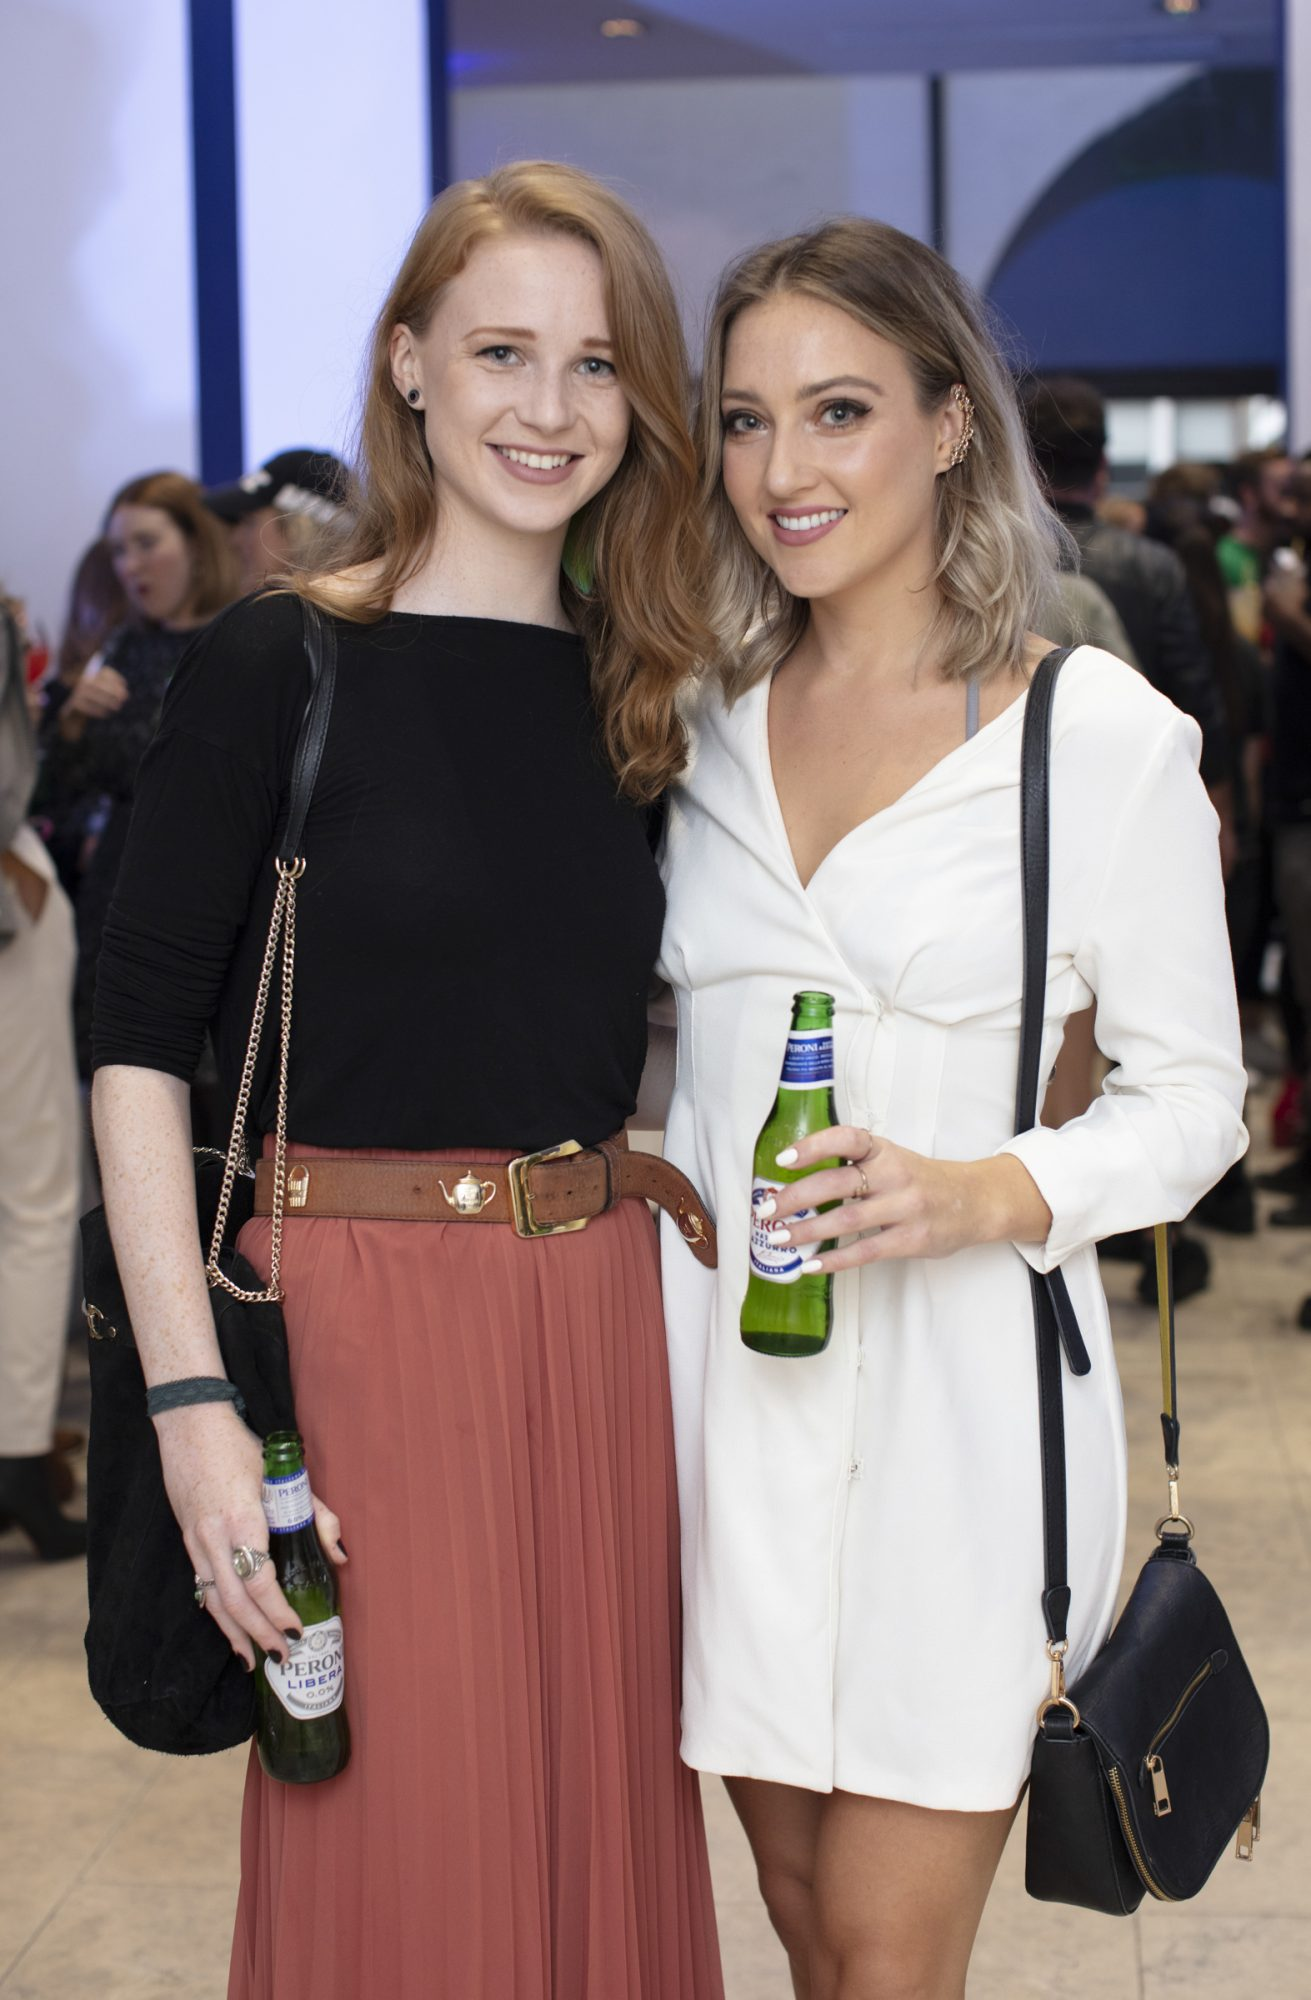 Ellie Cameron & Aoife Noonan pictured at the launch of The House of Peroni, which is open at the RHA in Dublin until Sunday, 1st September 2019. This year's residency sees the RHA transformed into a stylish Peroni inspired experience, filled with food, drink and design. www.thehouseofperoni.com Photo: Anthony Woods.